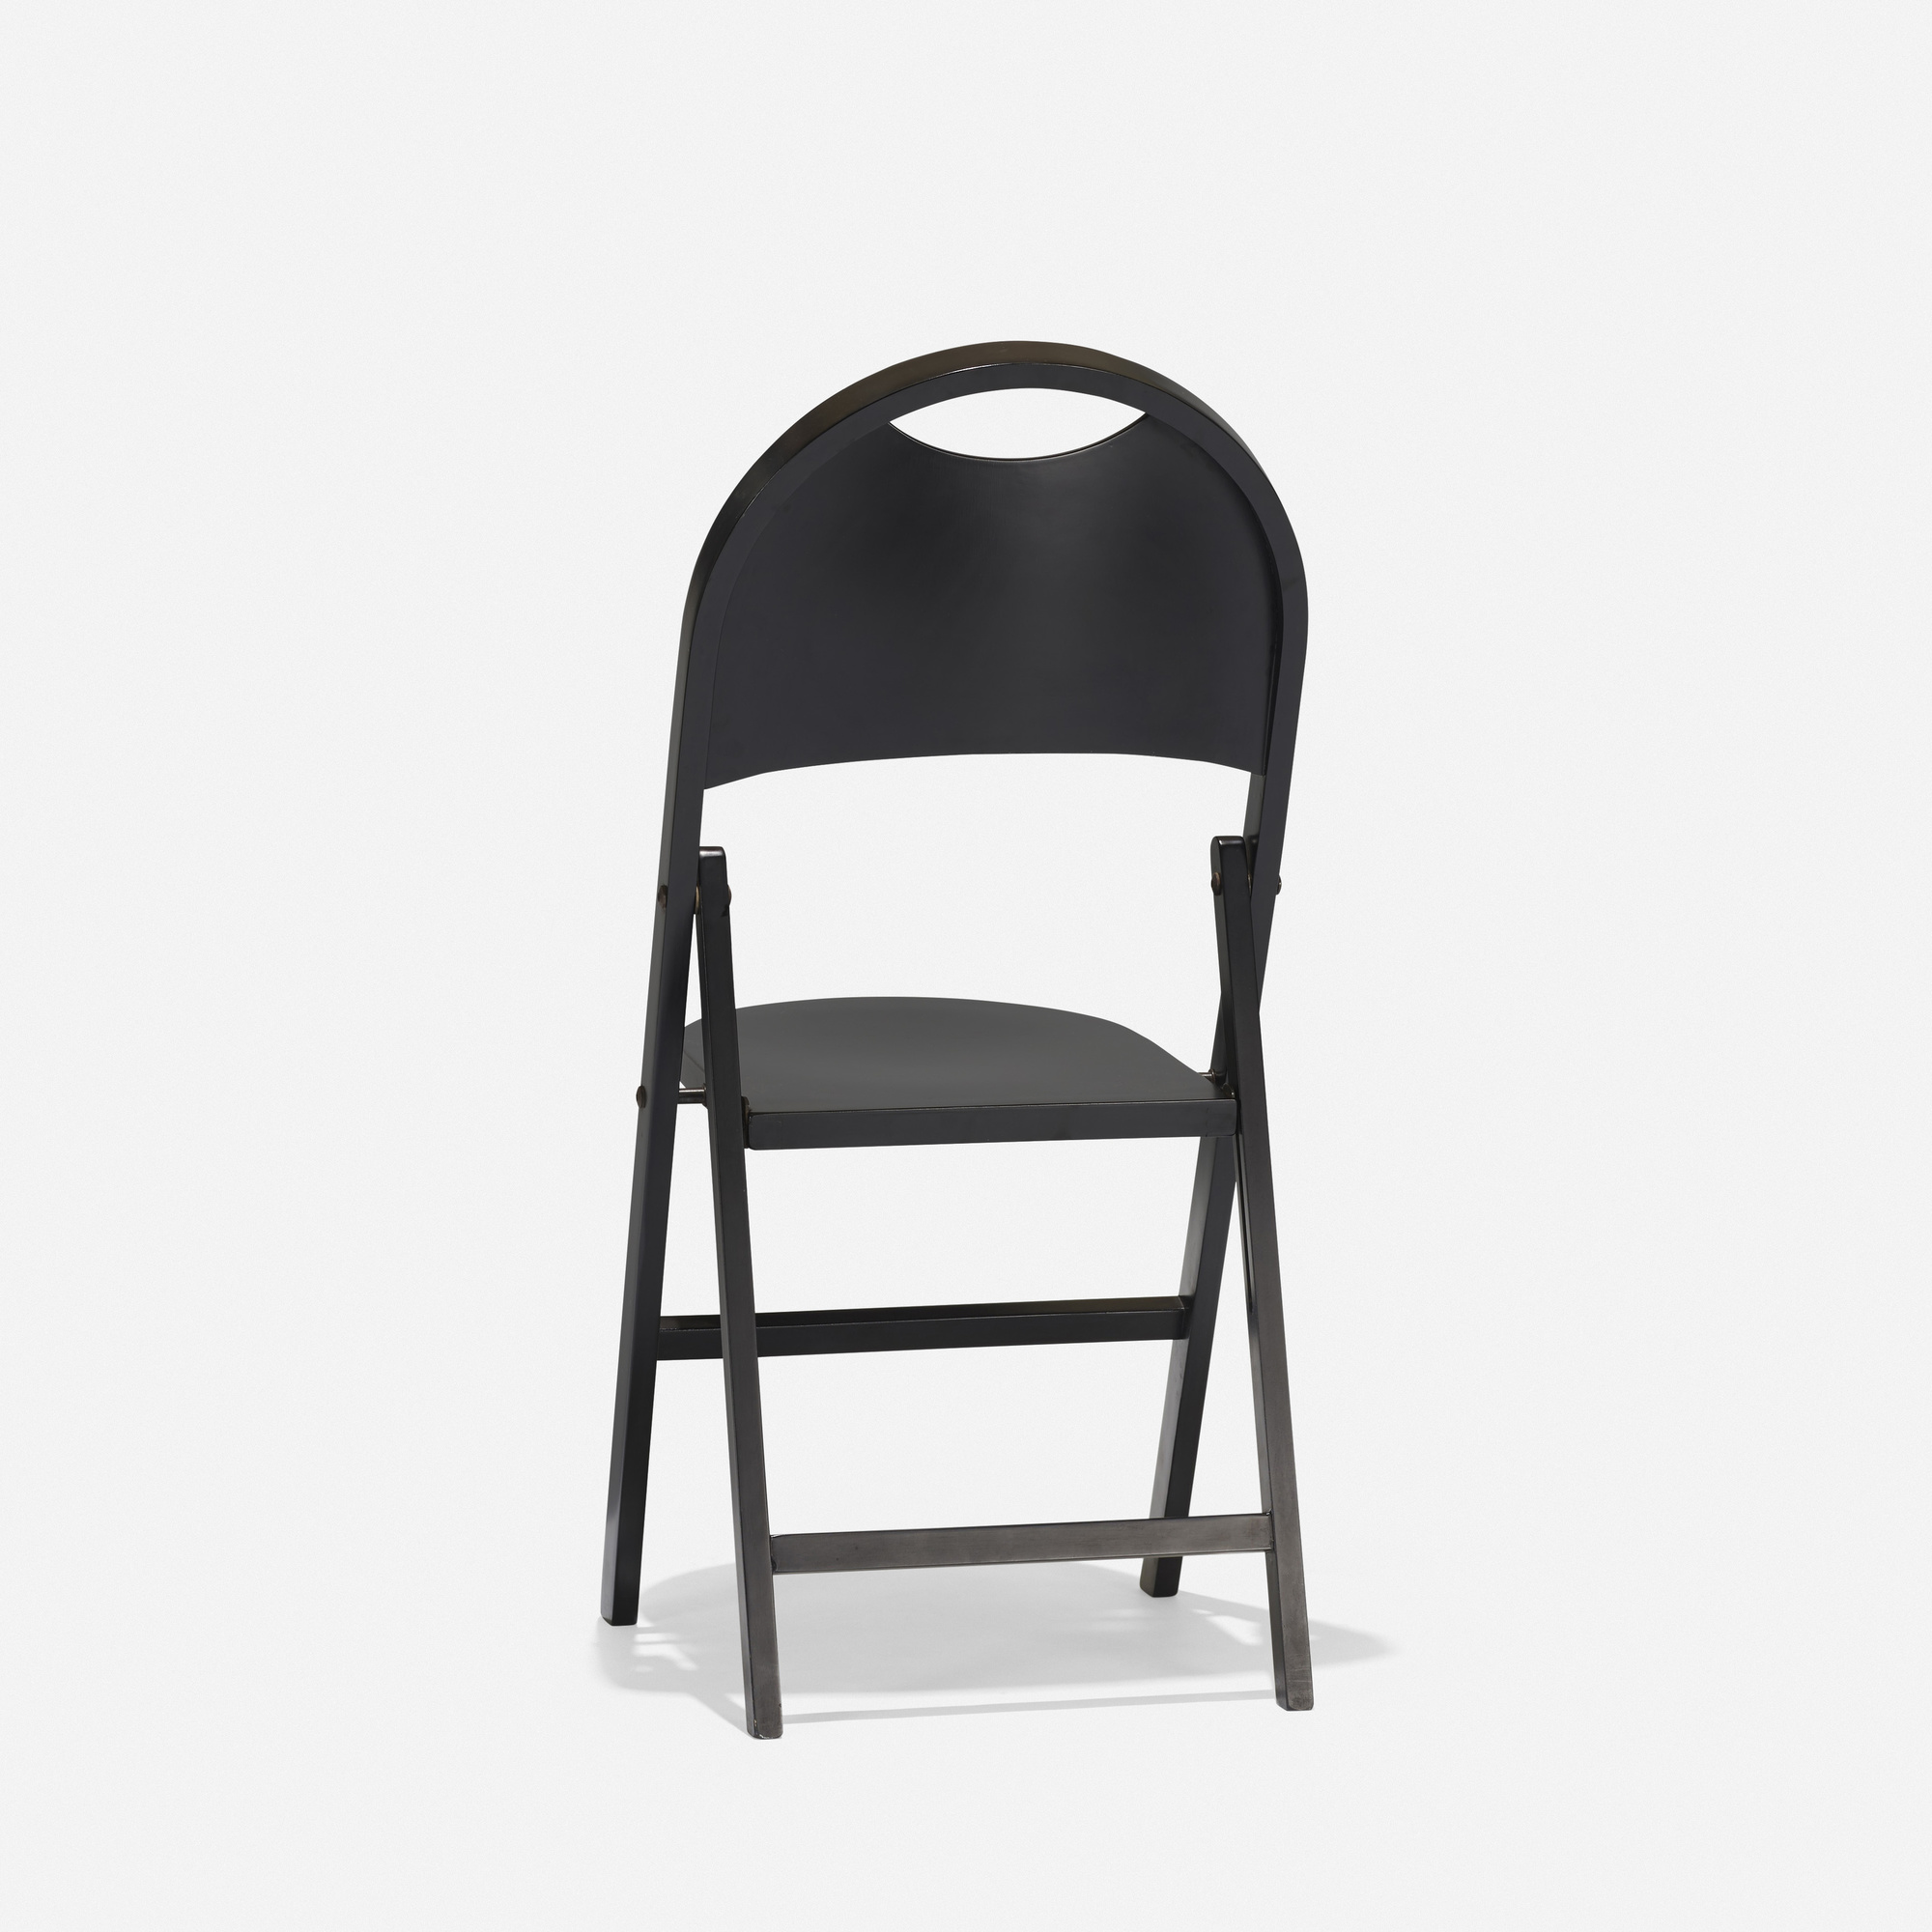 426: Achille and Pier Giacomo Castiglioni / Tric folding chair (3 of 3)